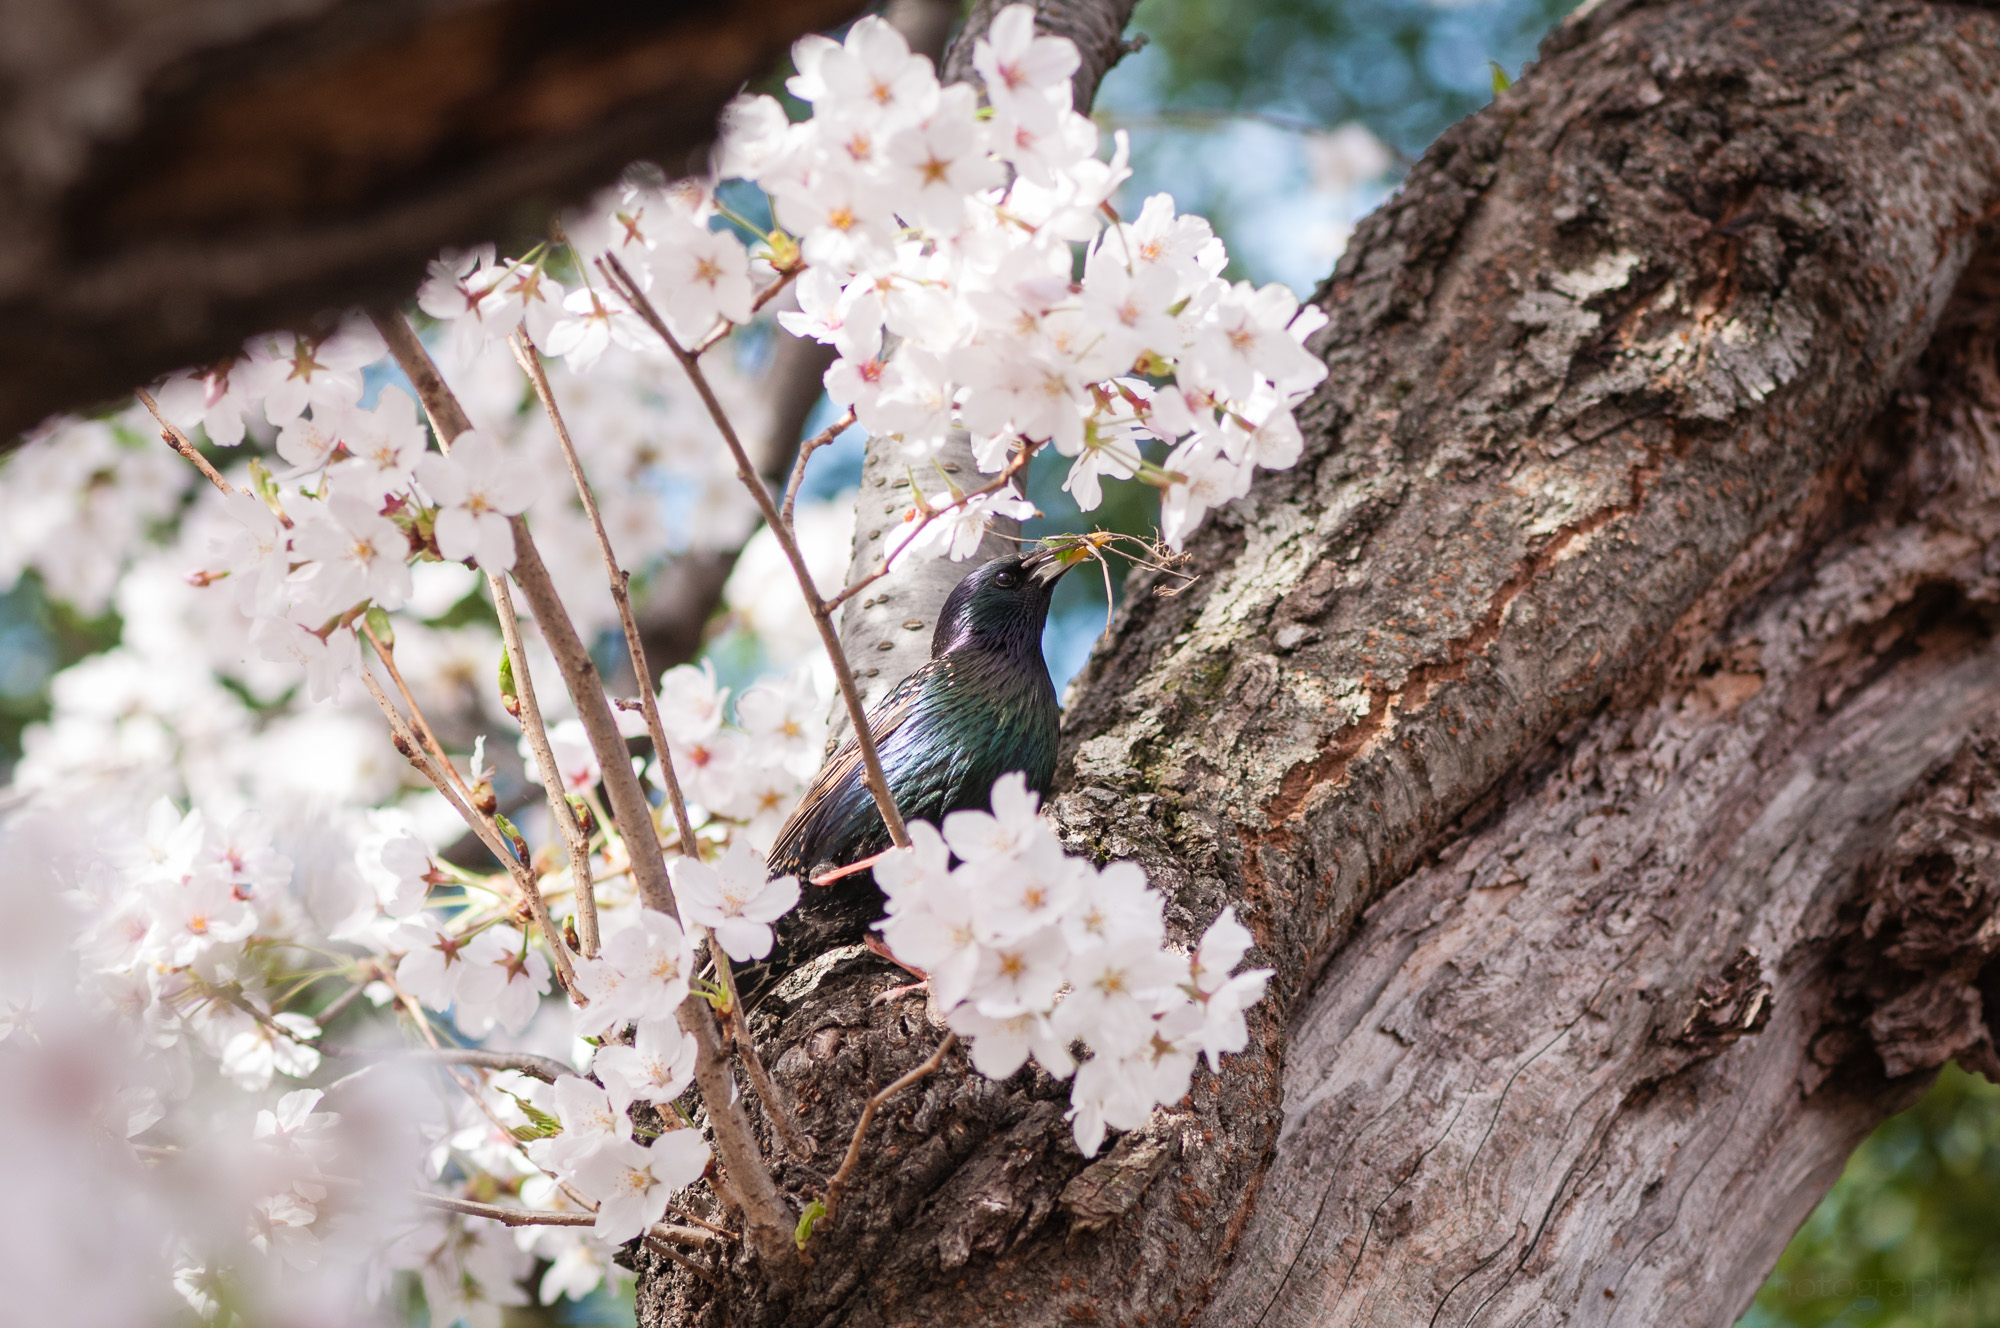 European Starling gathering nesting material in a cherry tree.